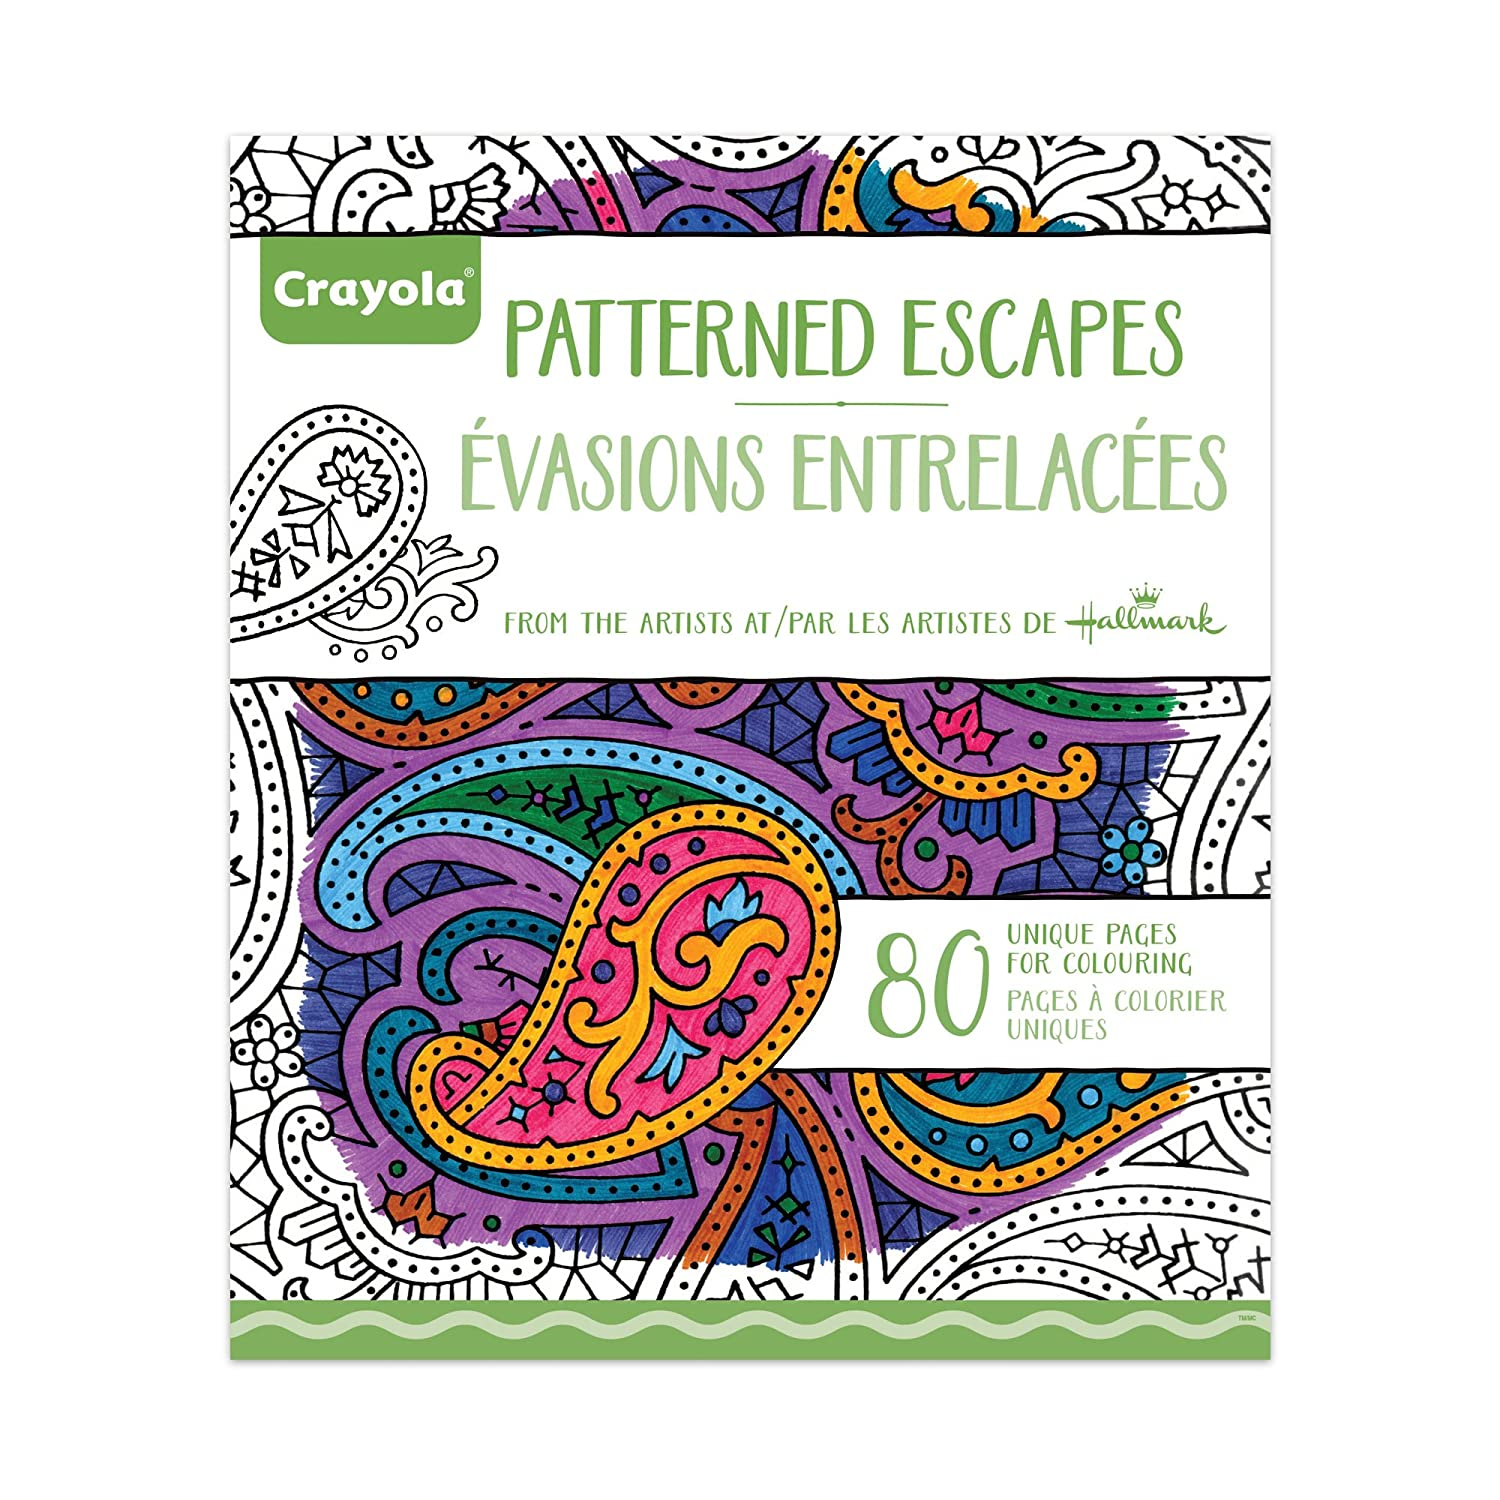 Crayola patterned escapes coloring book drawing sketch pads amazon canada